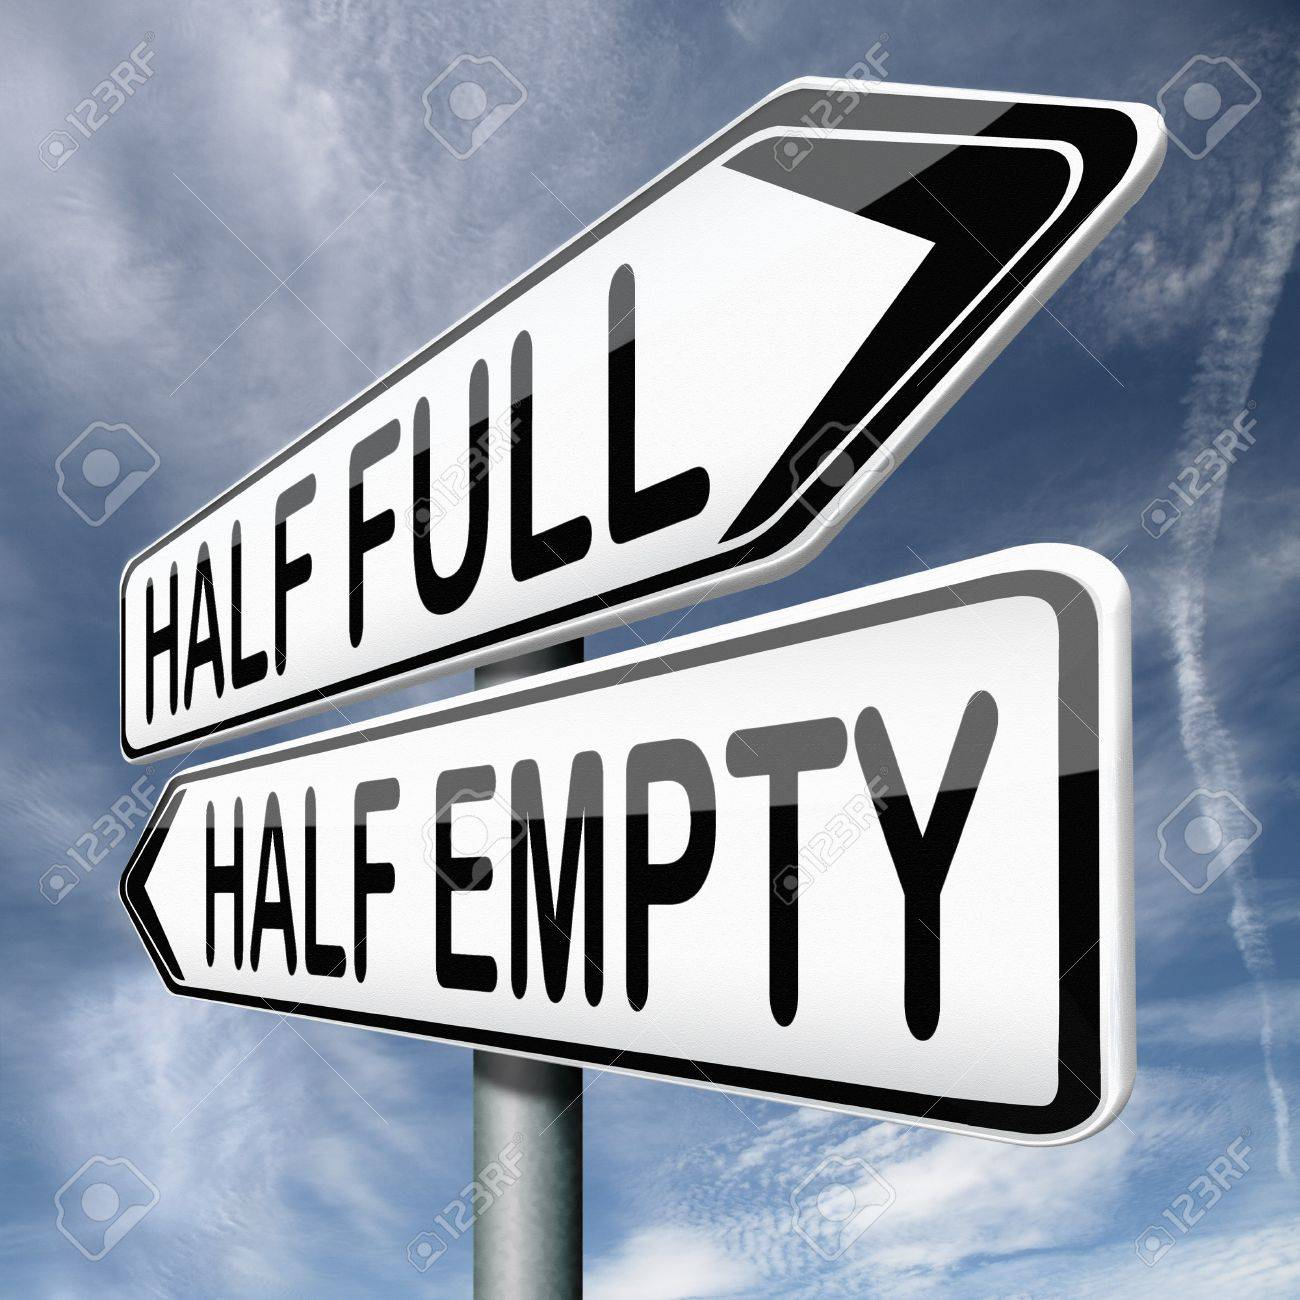 optimism or pessimism for an optimist the glass is half full stock photo optimism or pessimism for an optimist the glass is half full for the pessimist it is half empty which philosophy do you follow are you